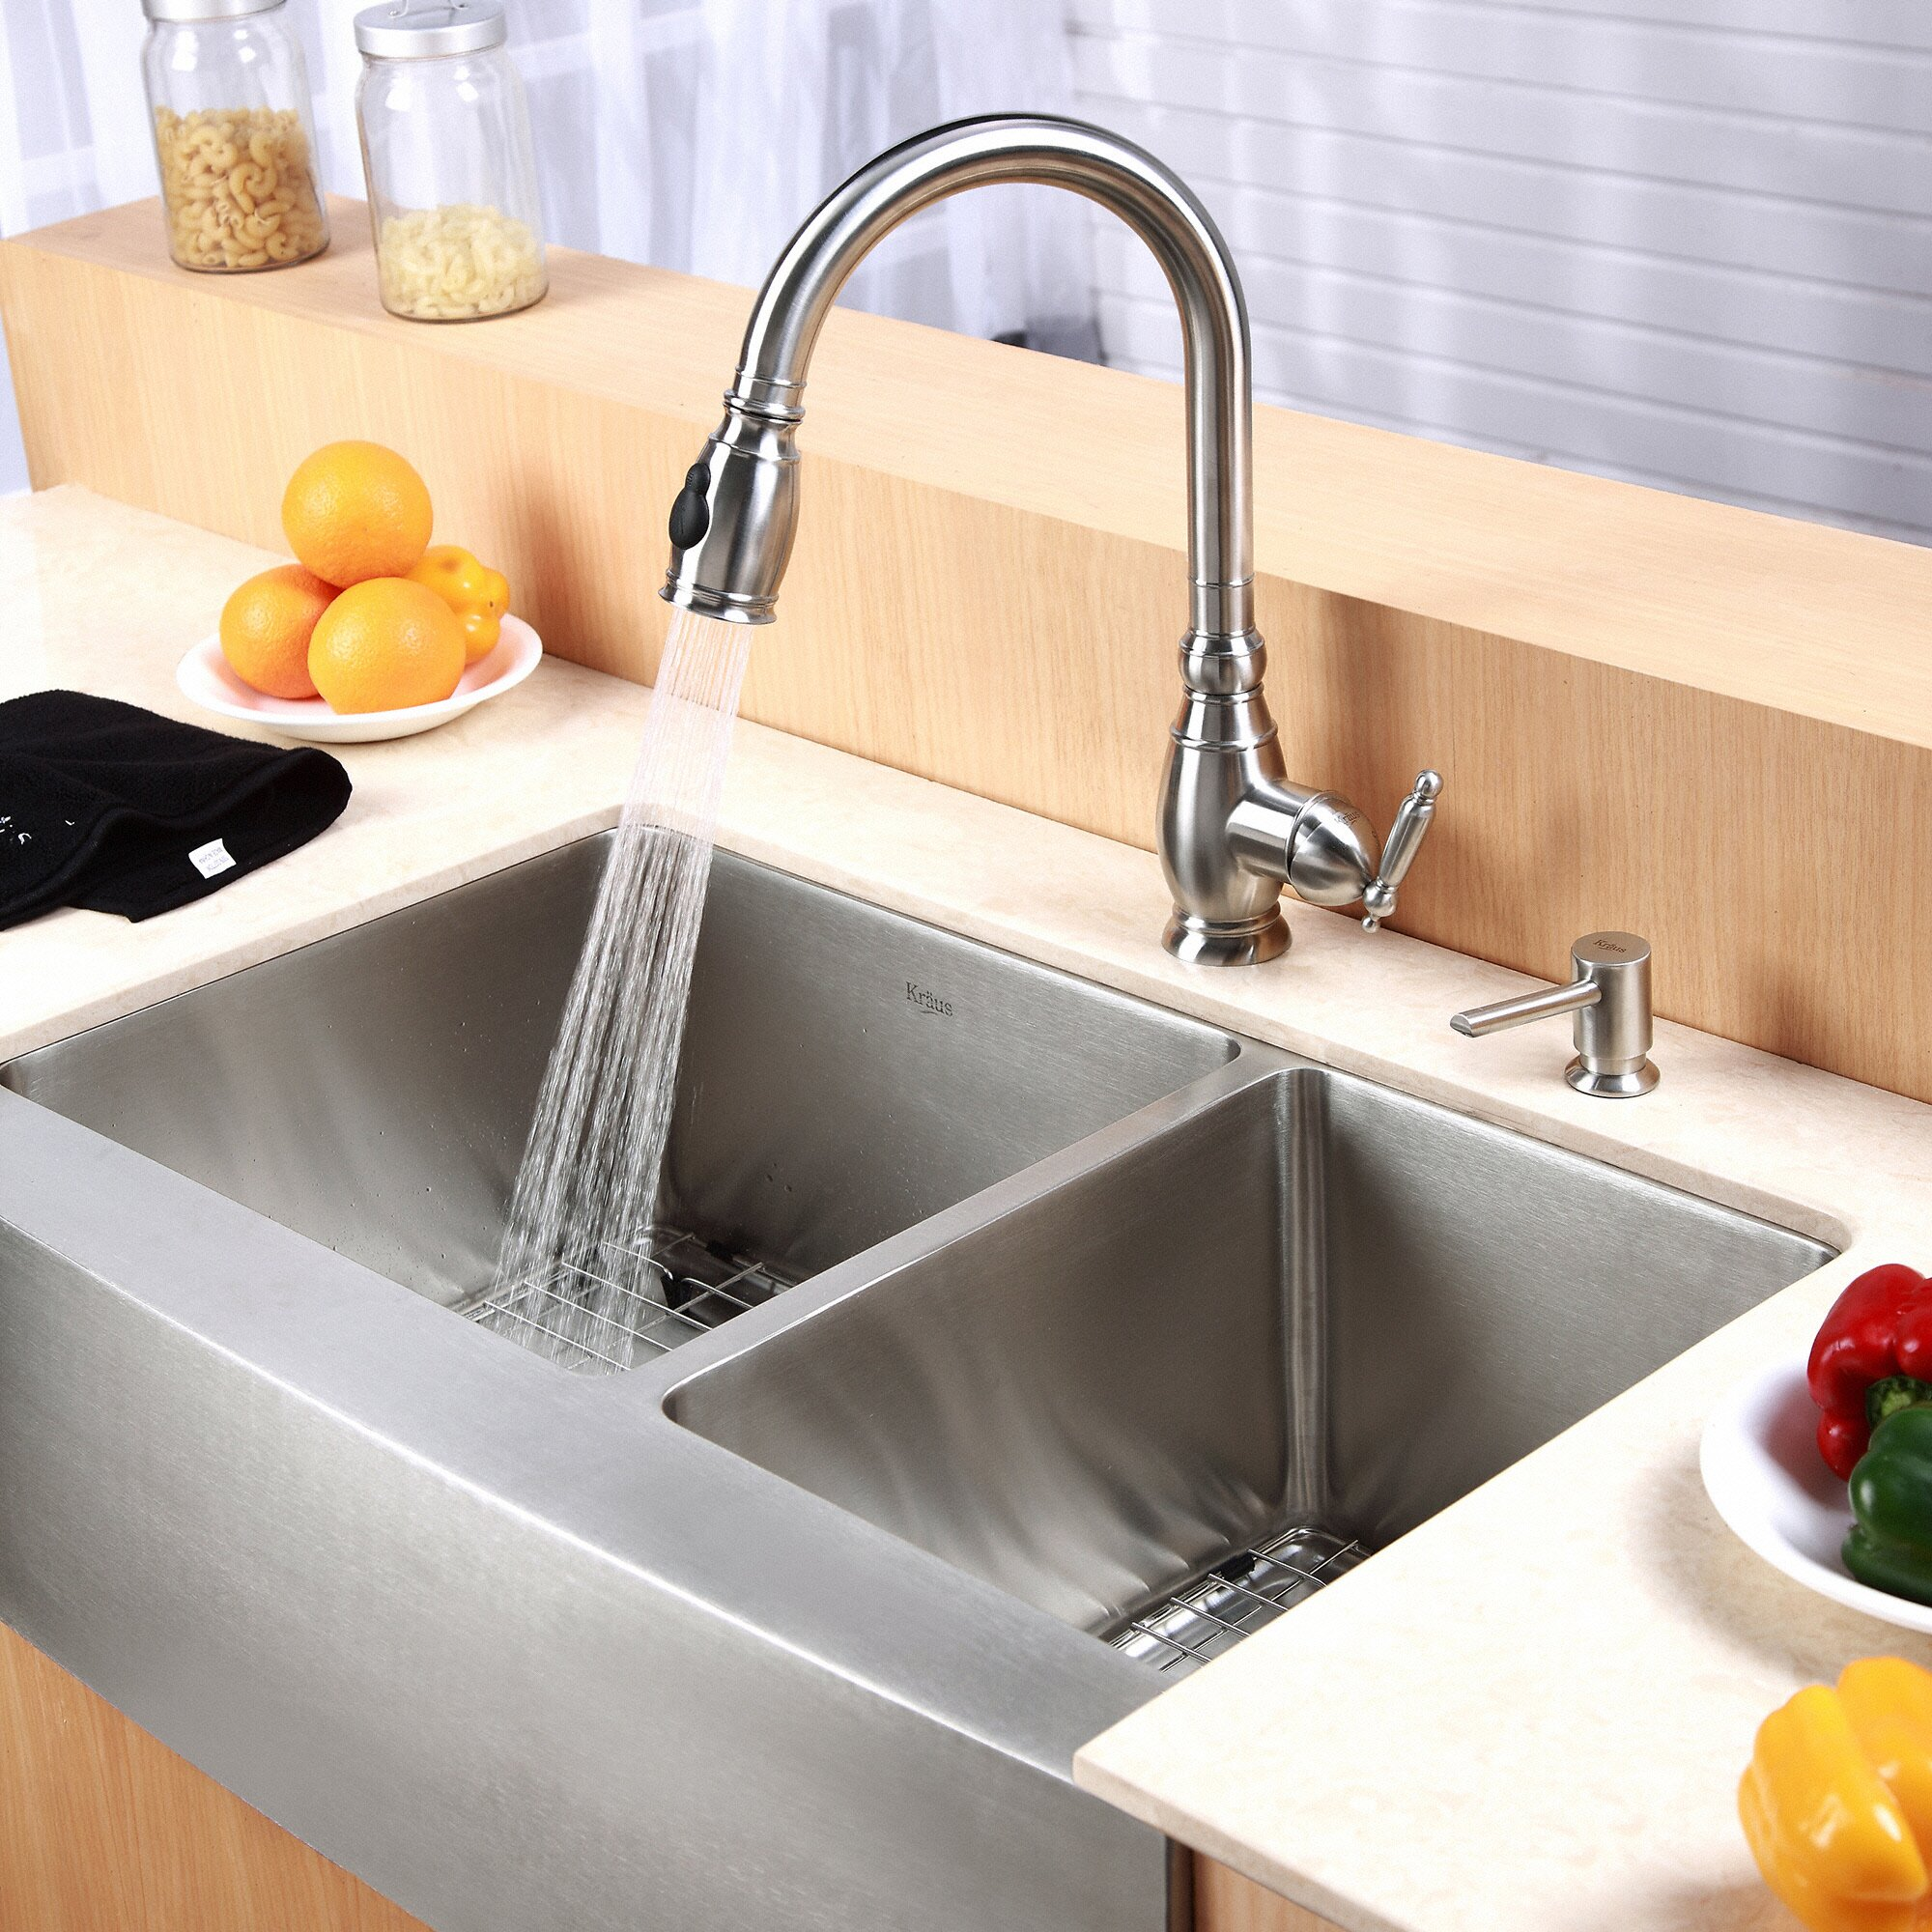 Farm Sink Double Bowl : ... Farmhouse / Apron Kitchen Sinks Kraus Part #: KHF203-33 SKU: KUS1519